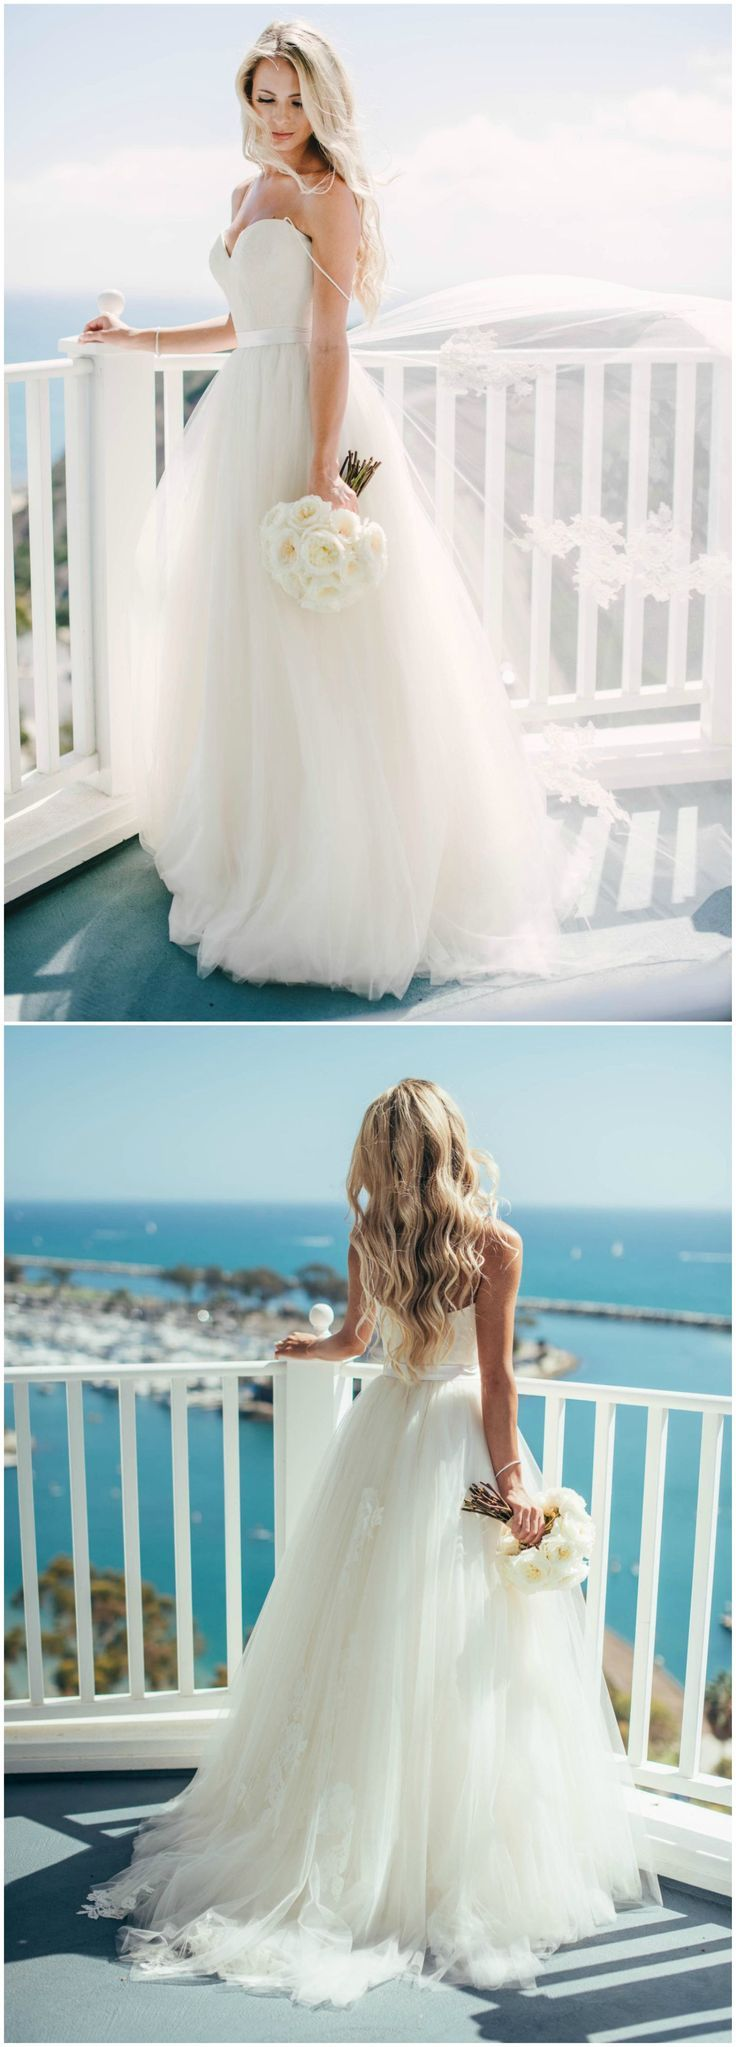 This strapless wedding dress with a silk belt and tulle skirt adds a